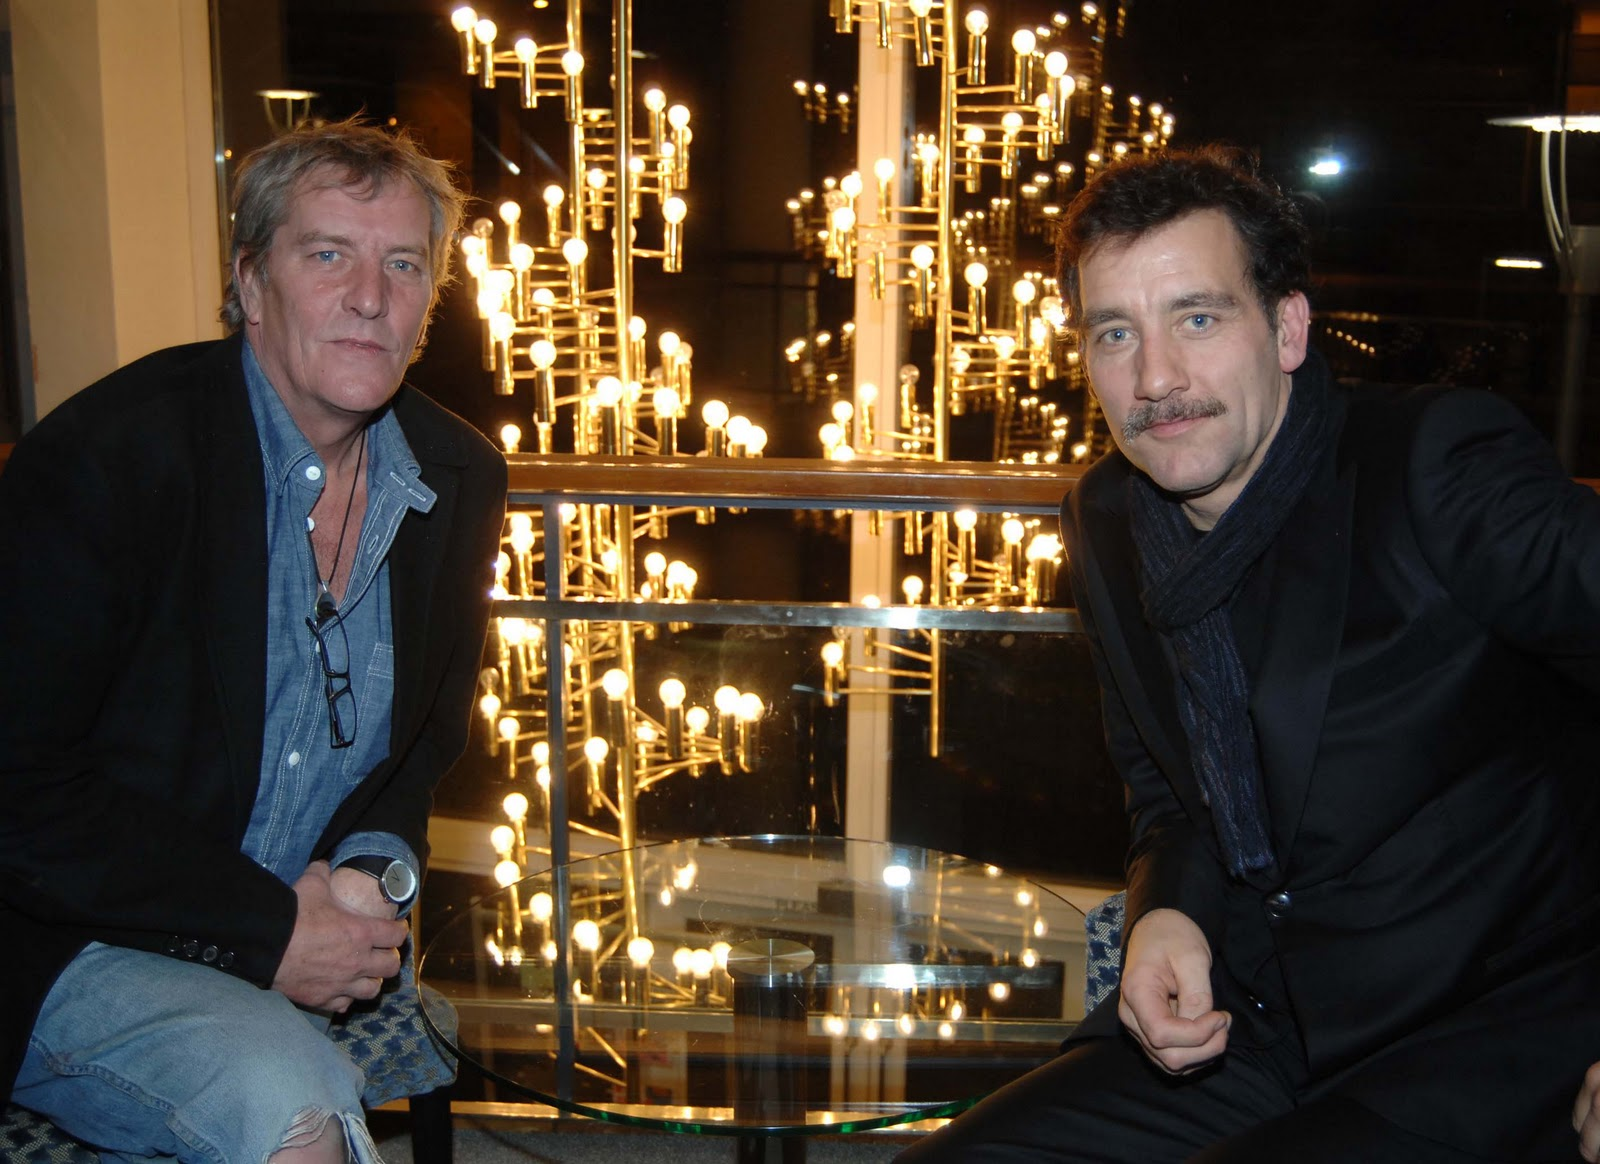 http://1.bp.blogspot.com/_vxRM7z378Jk/TTiw90WJ7GI/AAAAAAAAoDk/DiJwvdUKoFA/s1600/Hamish_Glen_and_Clive_Owen_-_photo_by_George_Archer.jpg